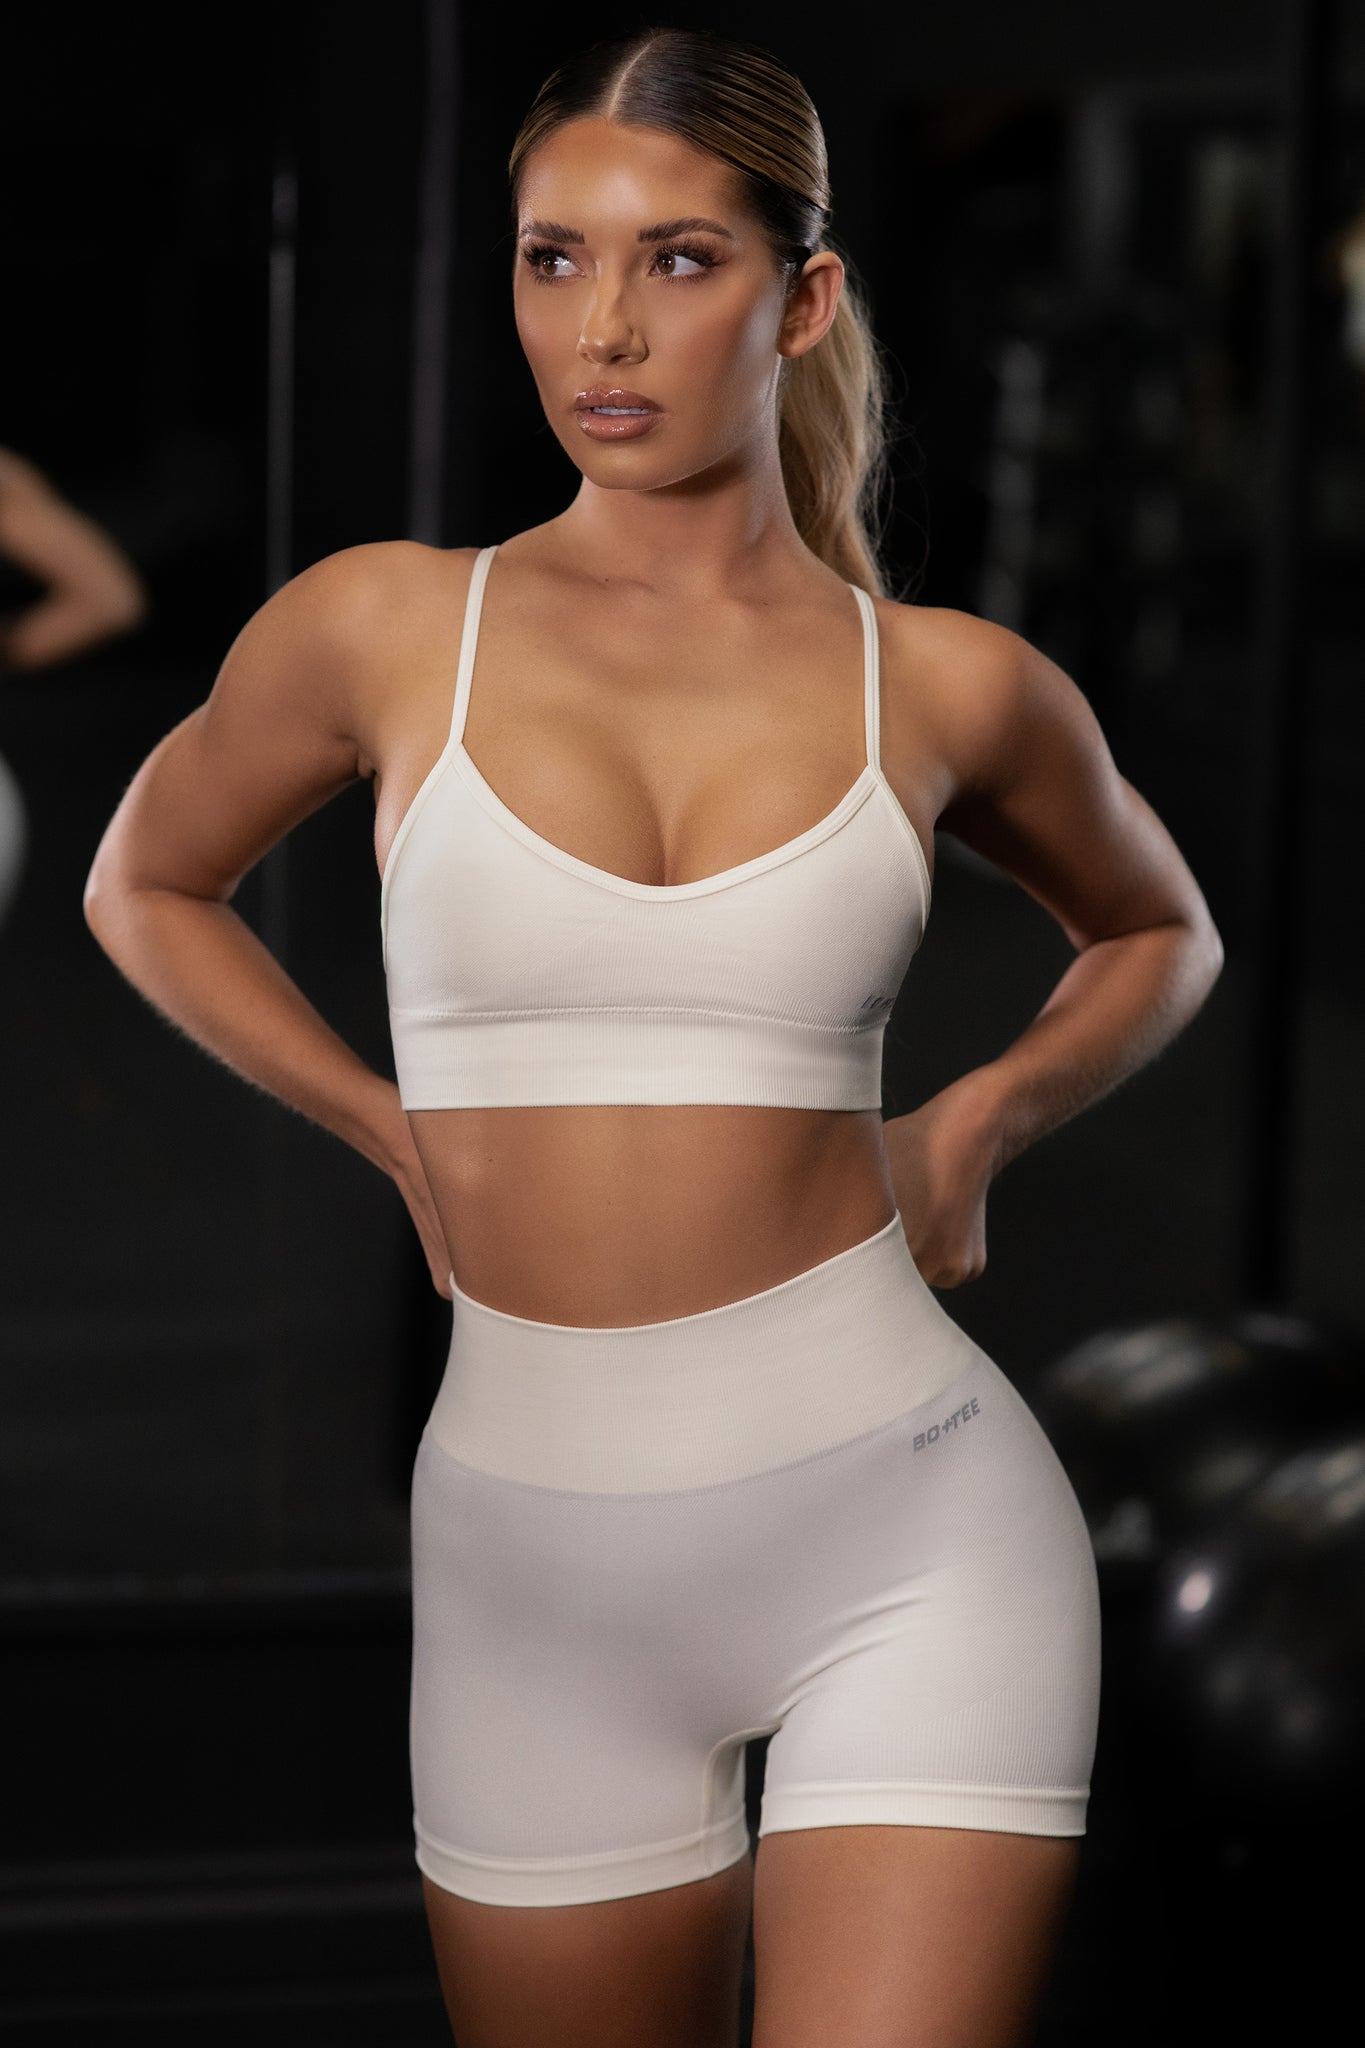 Plain cream V neck sports bra with ribbed underband and thin adjustable straps. Image 5 of 6.